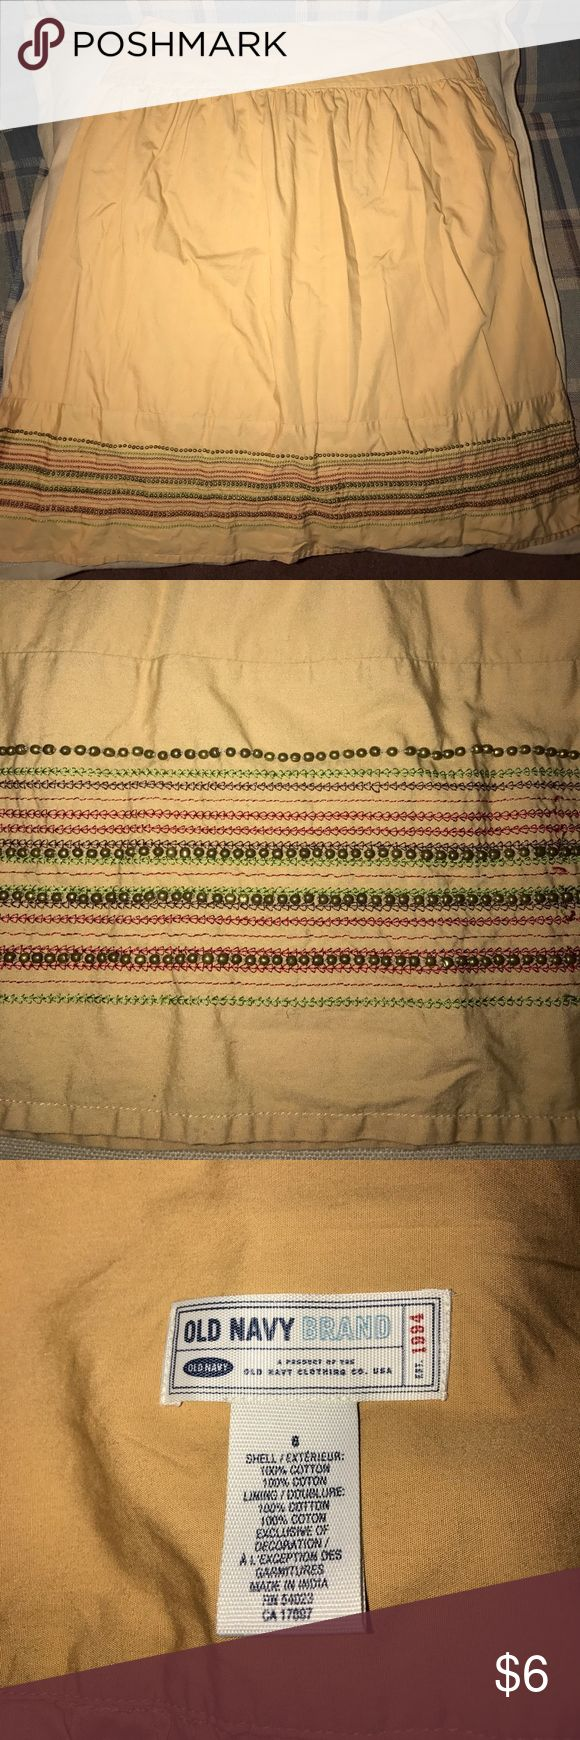 OLD NAVY Cotton Studded Hem Skirt Pre-owned OLD NAVY tan cotton skirt with green and red threaded design hem and gold studs. Size 6. In excellent condition. Old Navy Skirts A-Line or Full